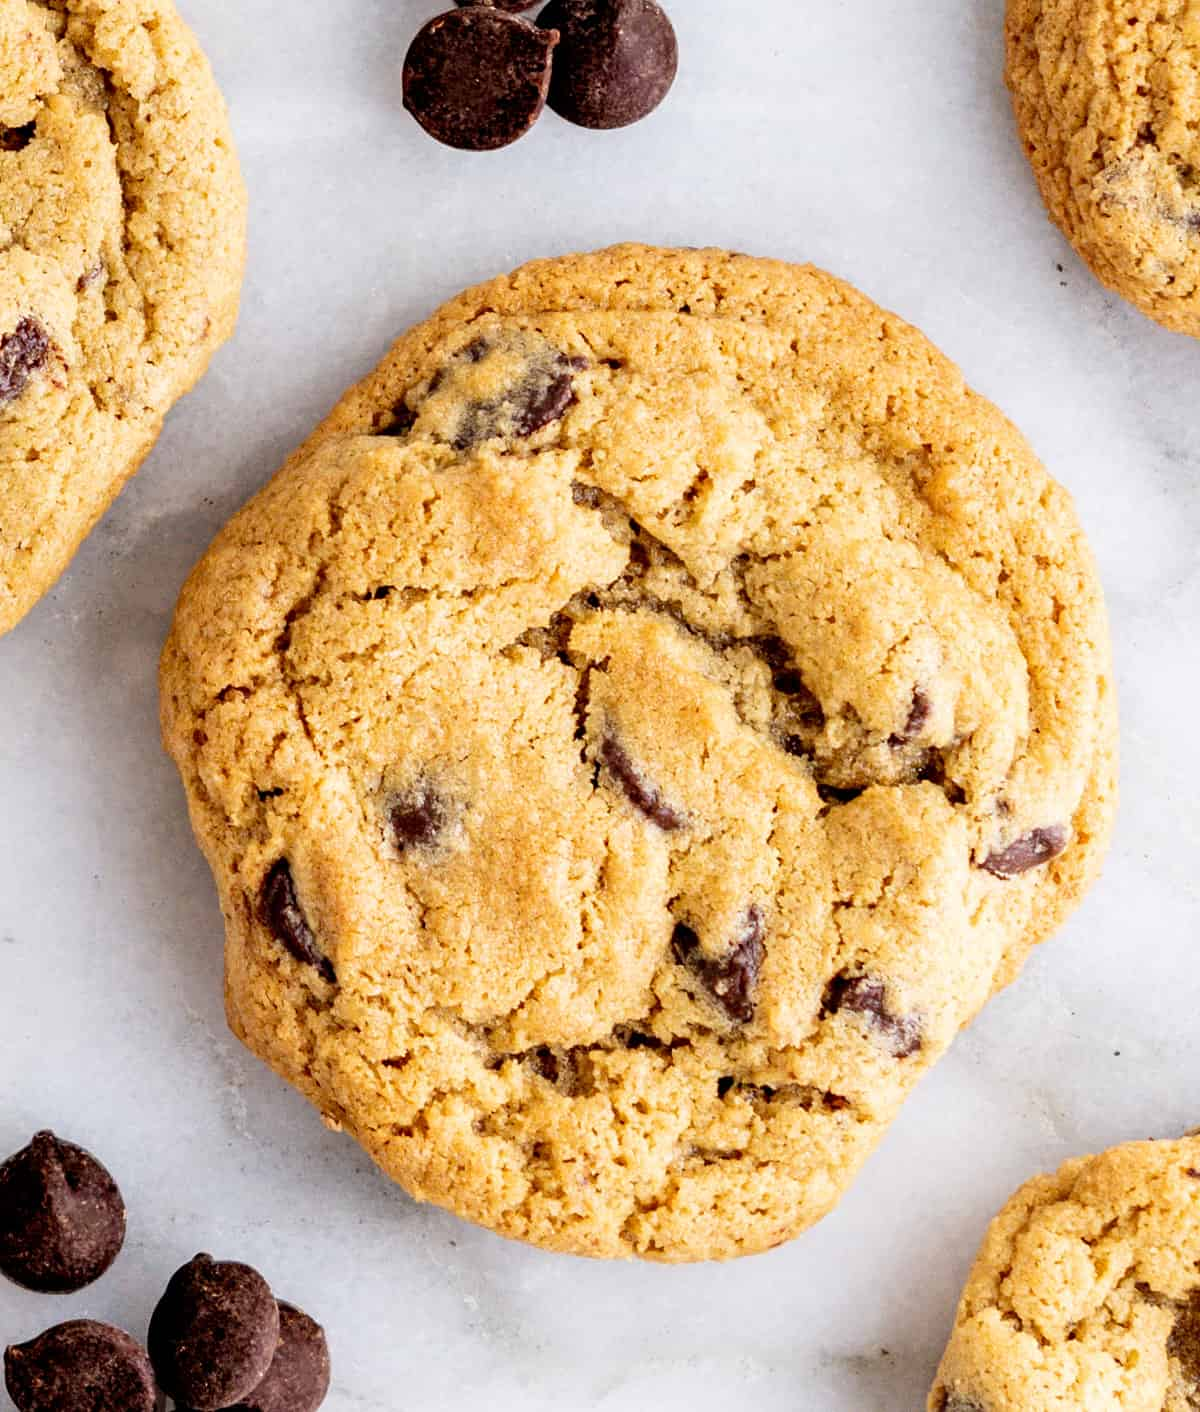 Oat Flour Chocolate Chip Cookies on a white marble board with scattered chocolate chips.